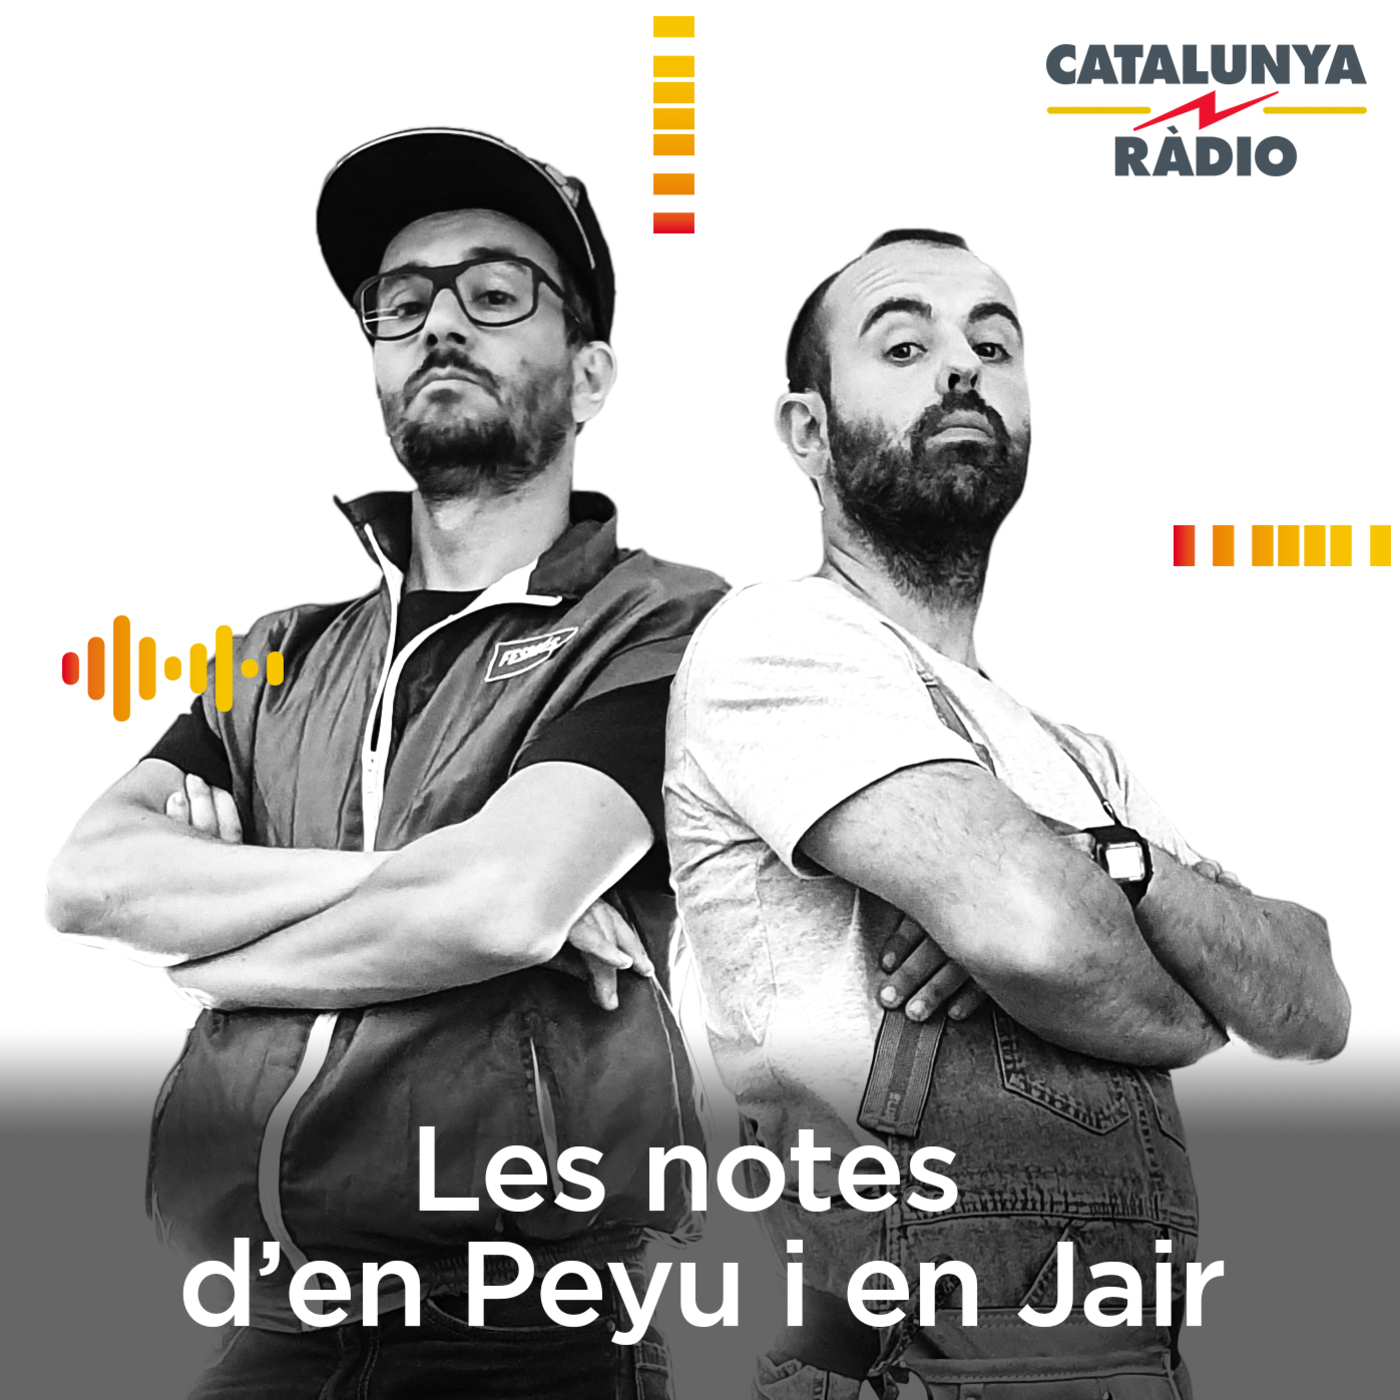 Les notes d'en Peyu i en Jair